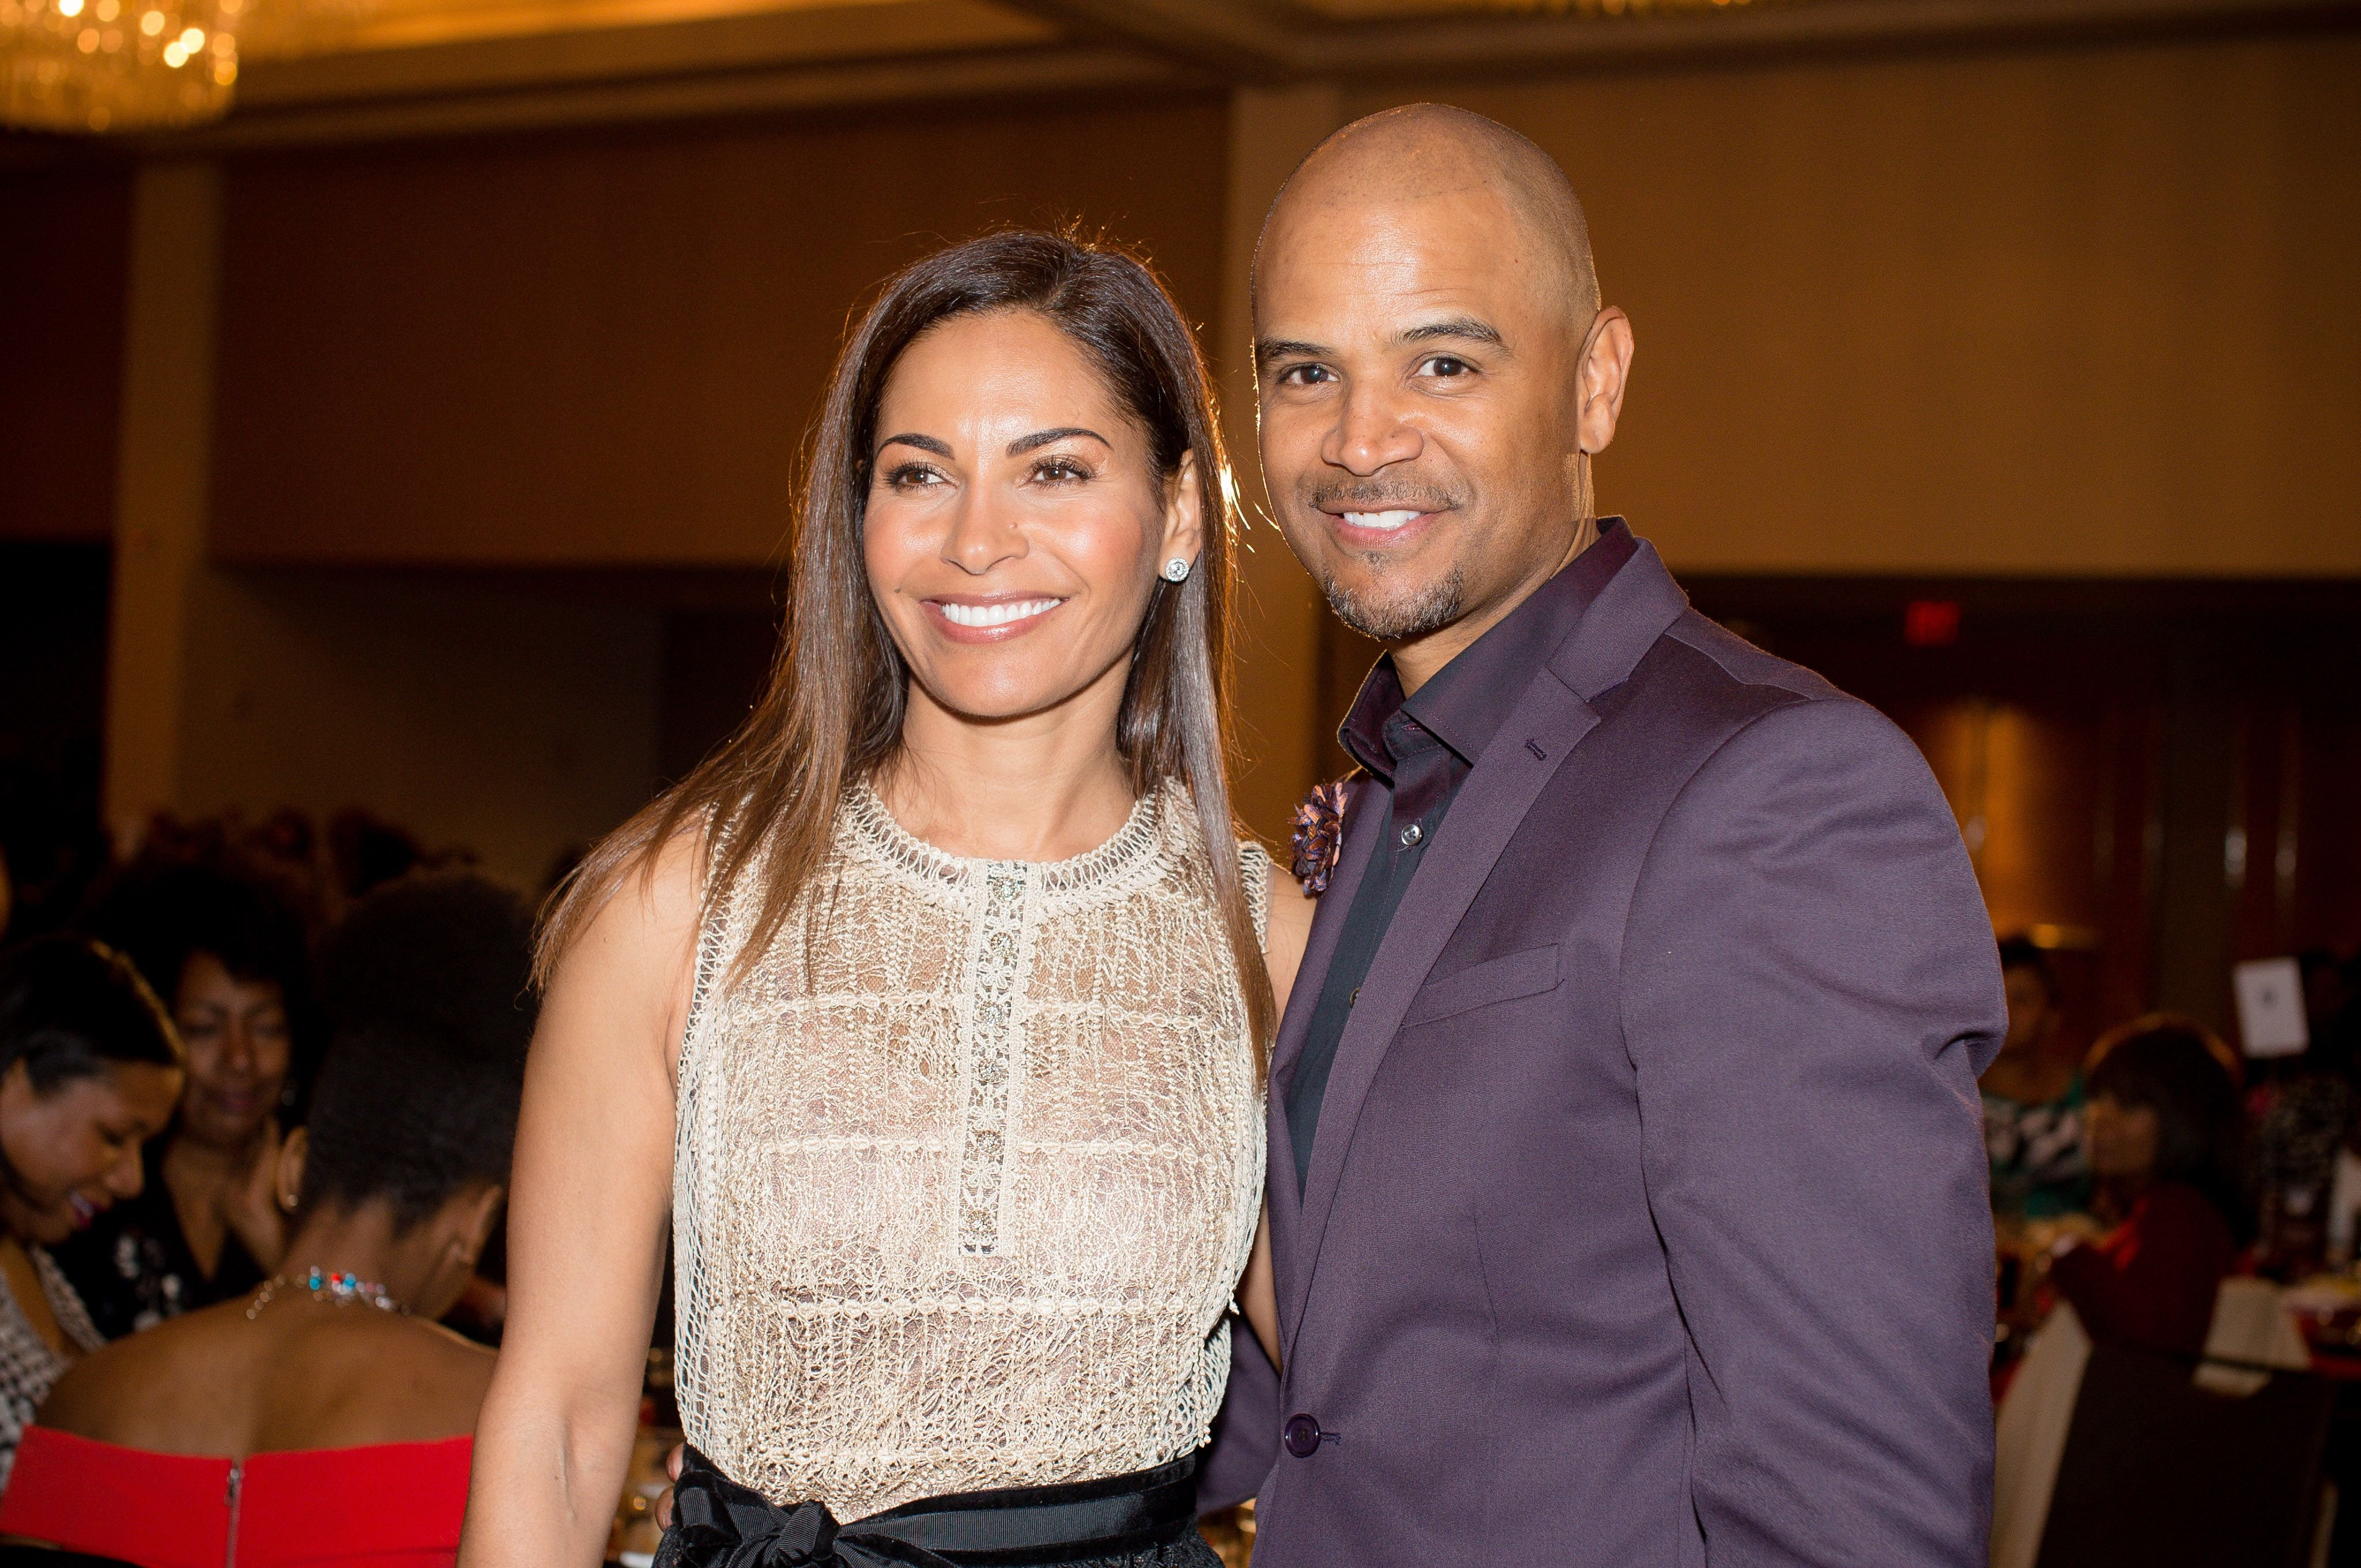 Salli Richardson Whitfield and Dondre Whitfield at the 2017 Black Women Film Summit awards luncheon at Atlanta Marriott Marquis on March 3, 2017 | Photo: Getty Images